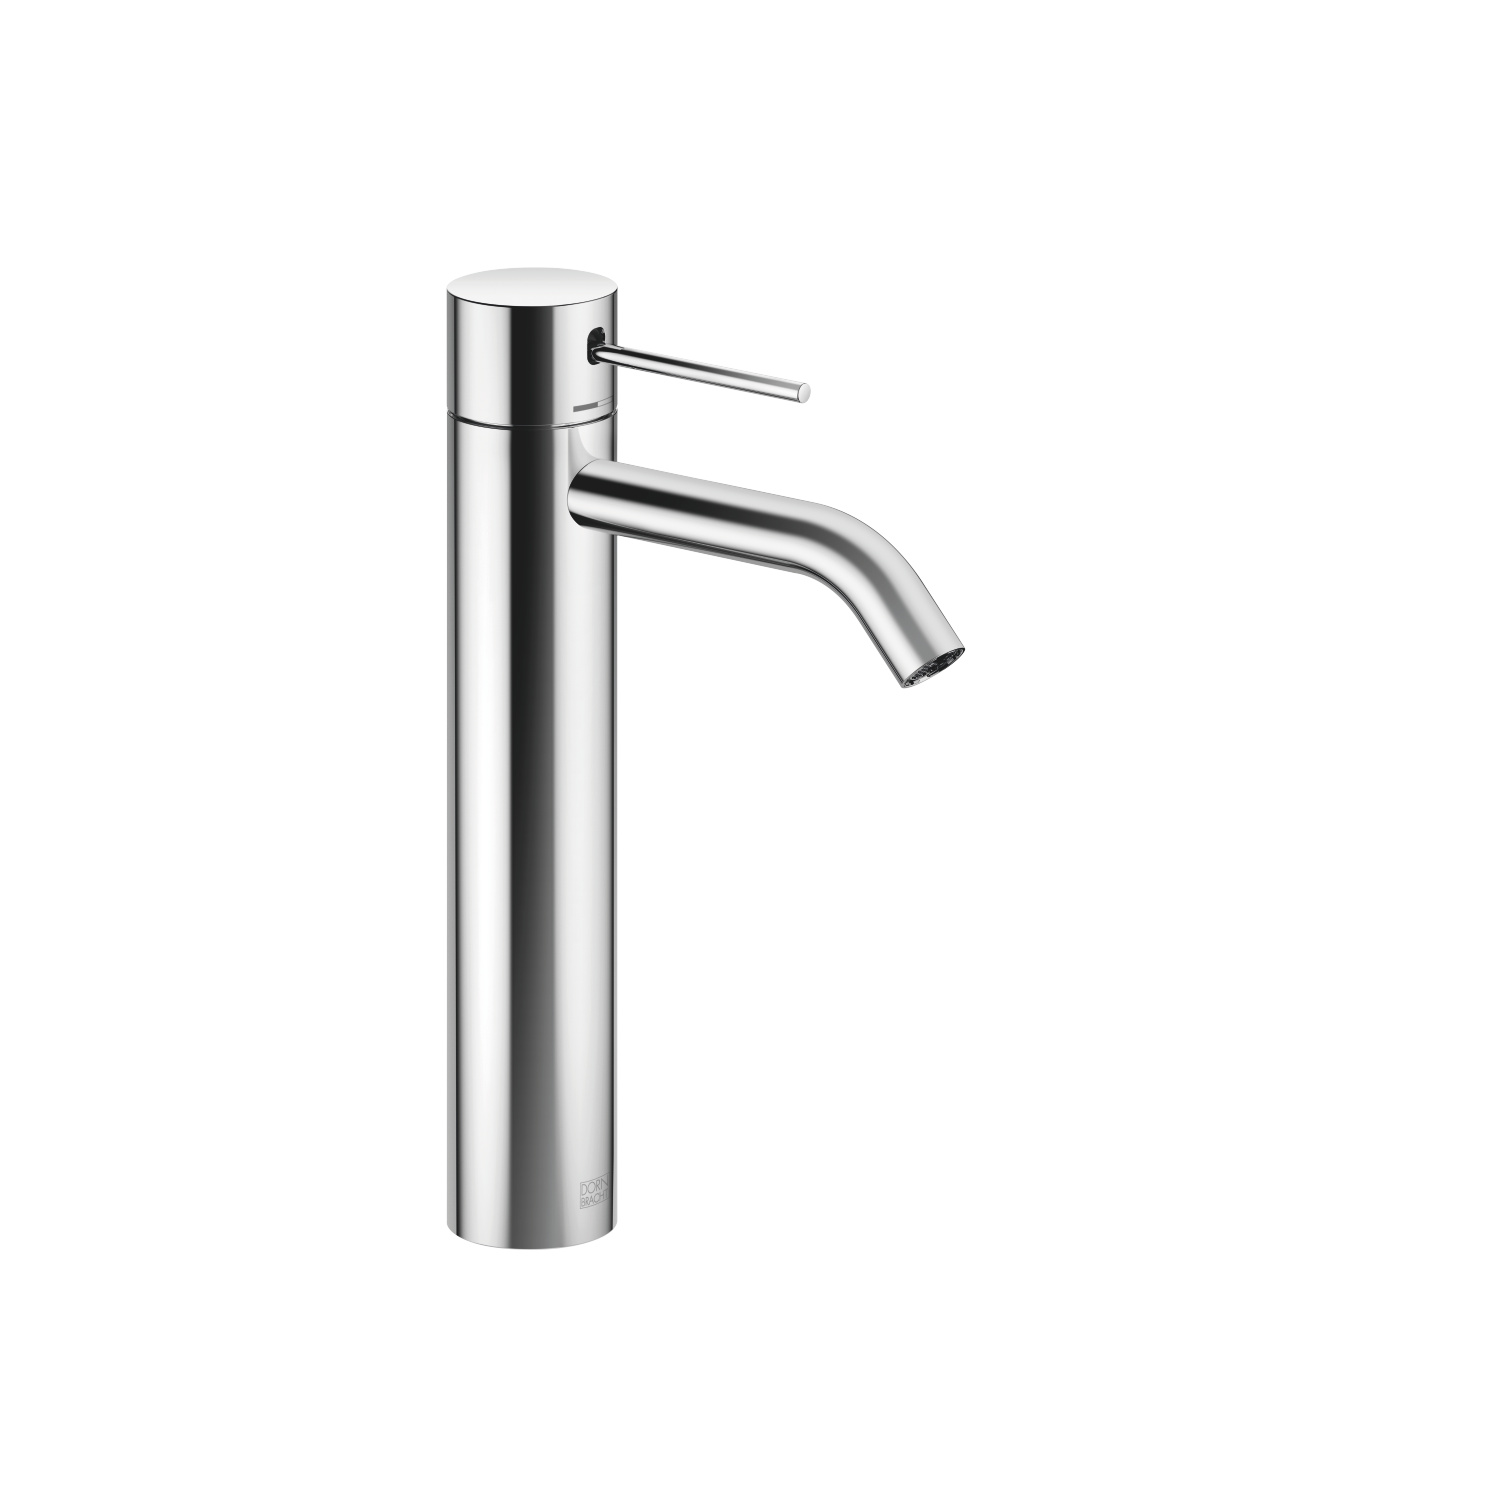 META SLIM Single-lever basin mixer with raised base without pop-up waste - polished chrome - 33 537 662-00